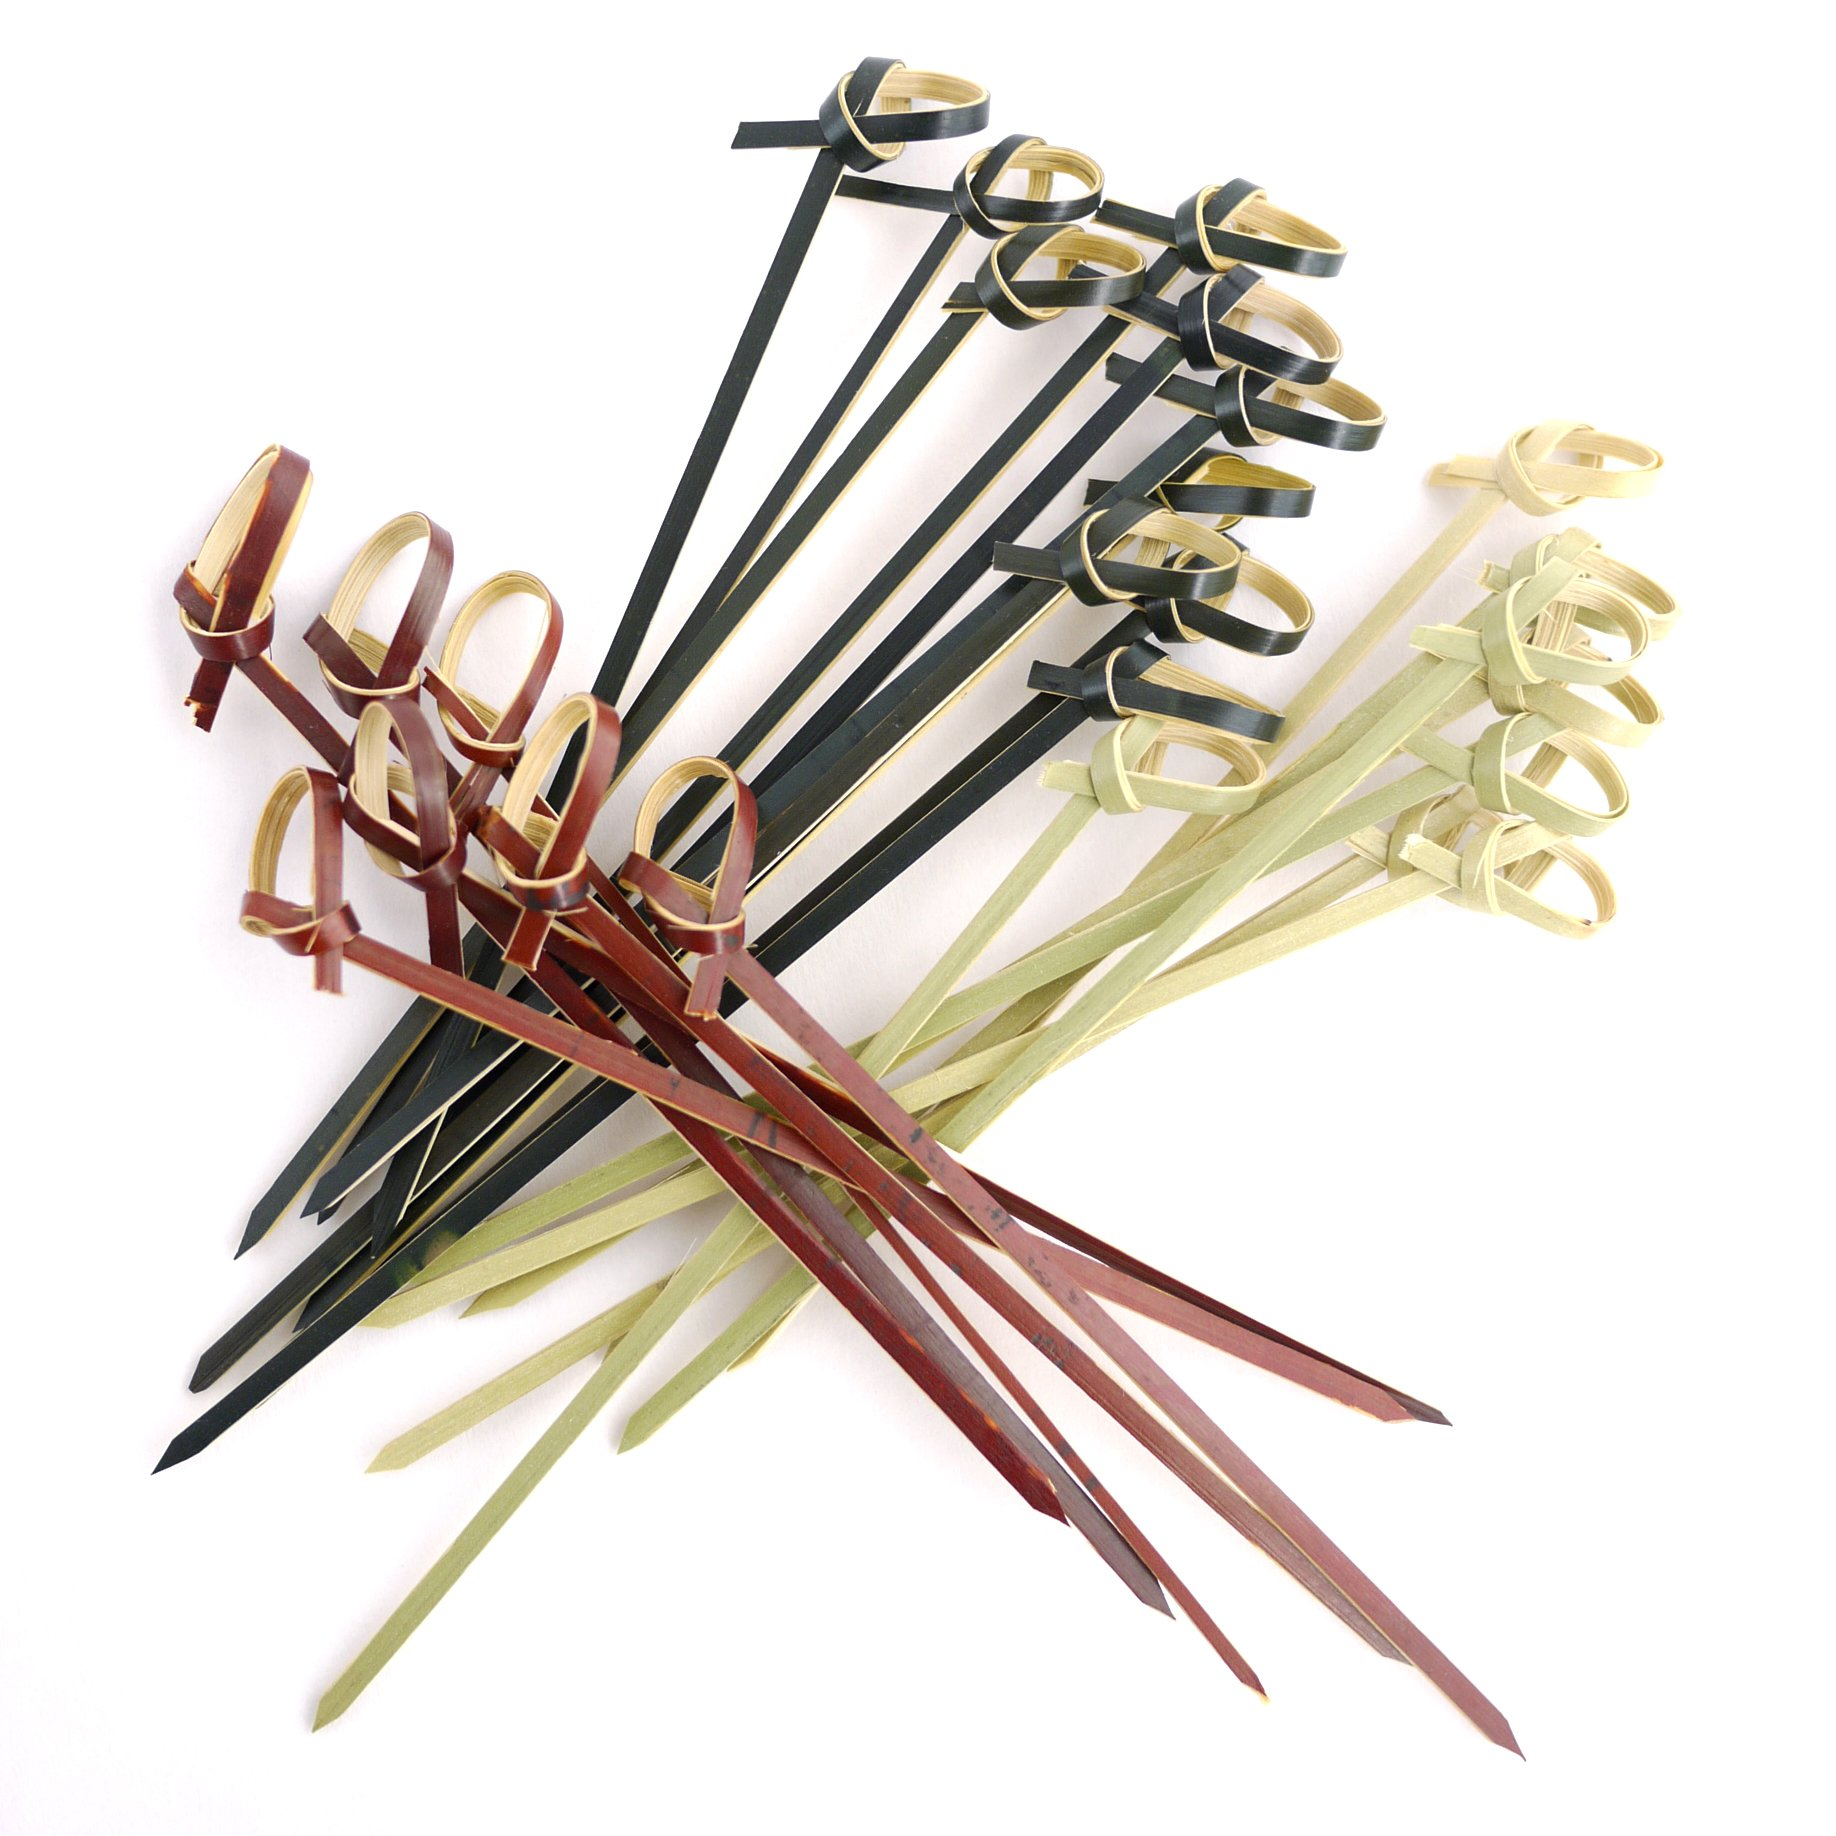 BambooMN 3.5'' Bamboo Knotted Cocktails Hors D'oeurves Sandwich Skewer Picks for Catered Events, Holiday's, Restaurants or Buffet Party Supplies, 3 Colors, 300 Pieces